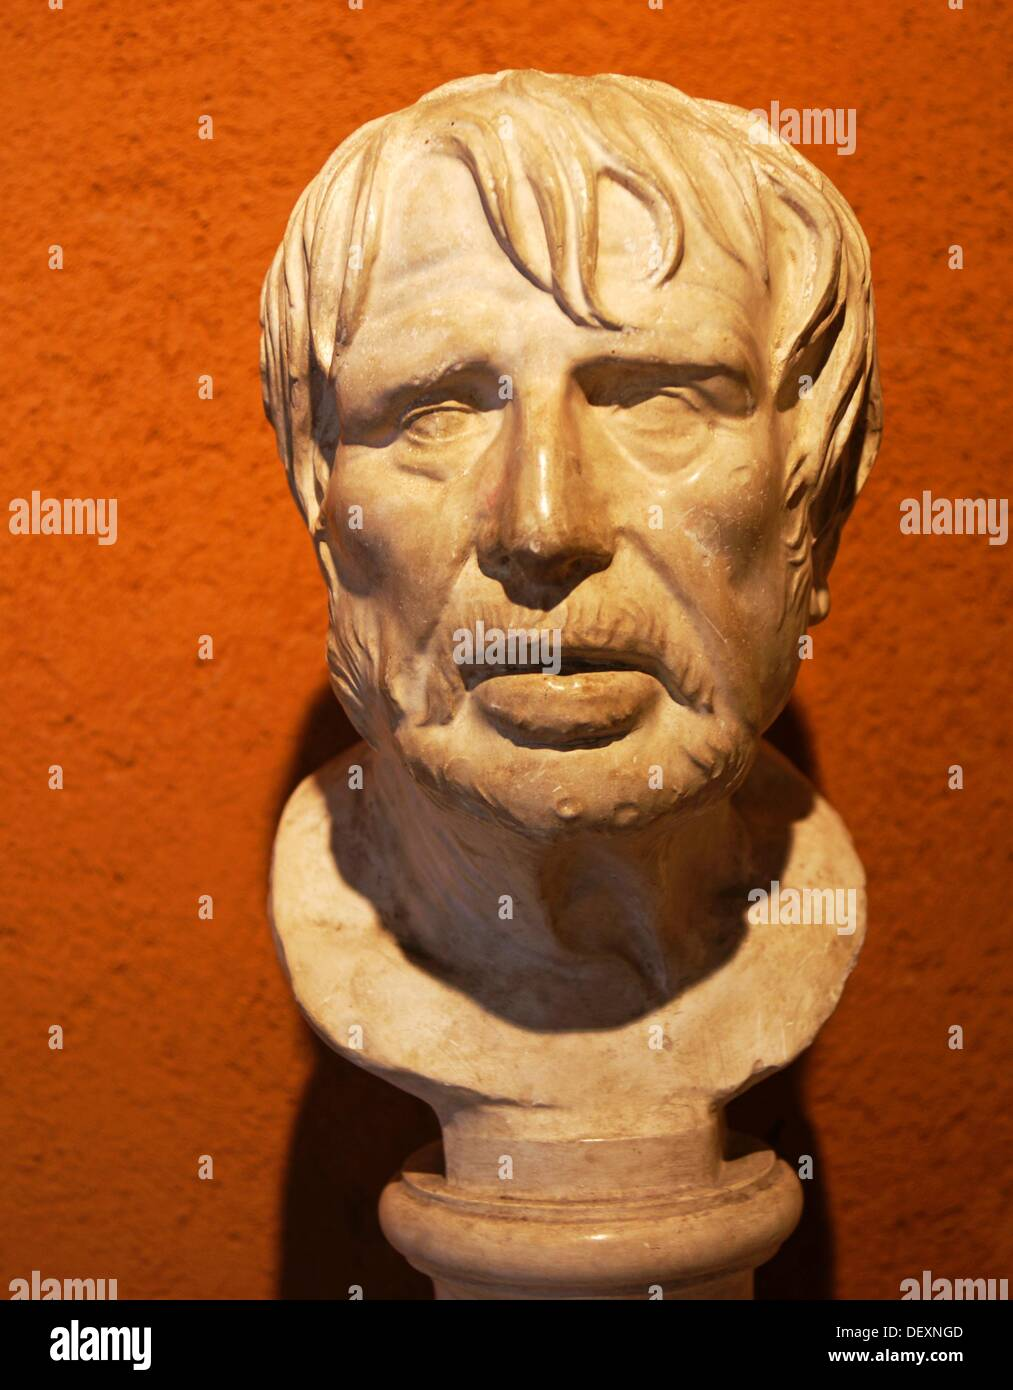 Roman bust said of Seneca preserved in museum, Auch, Gers, Midi-Pyrenees, France - Stock Image